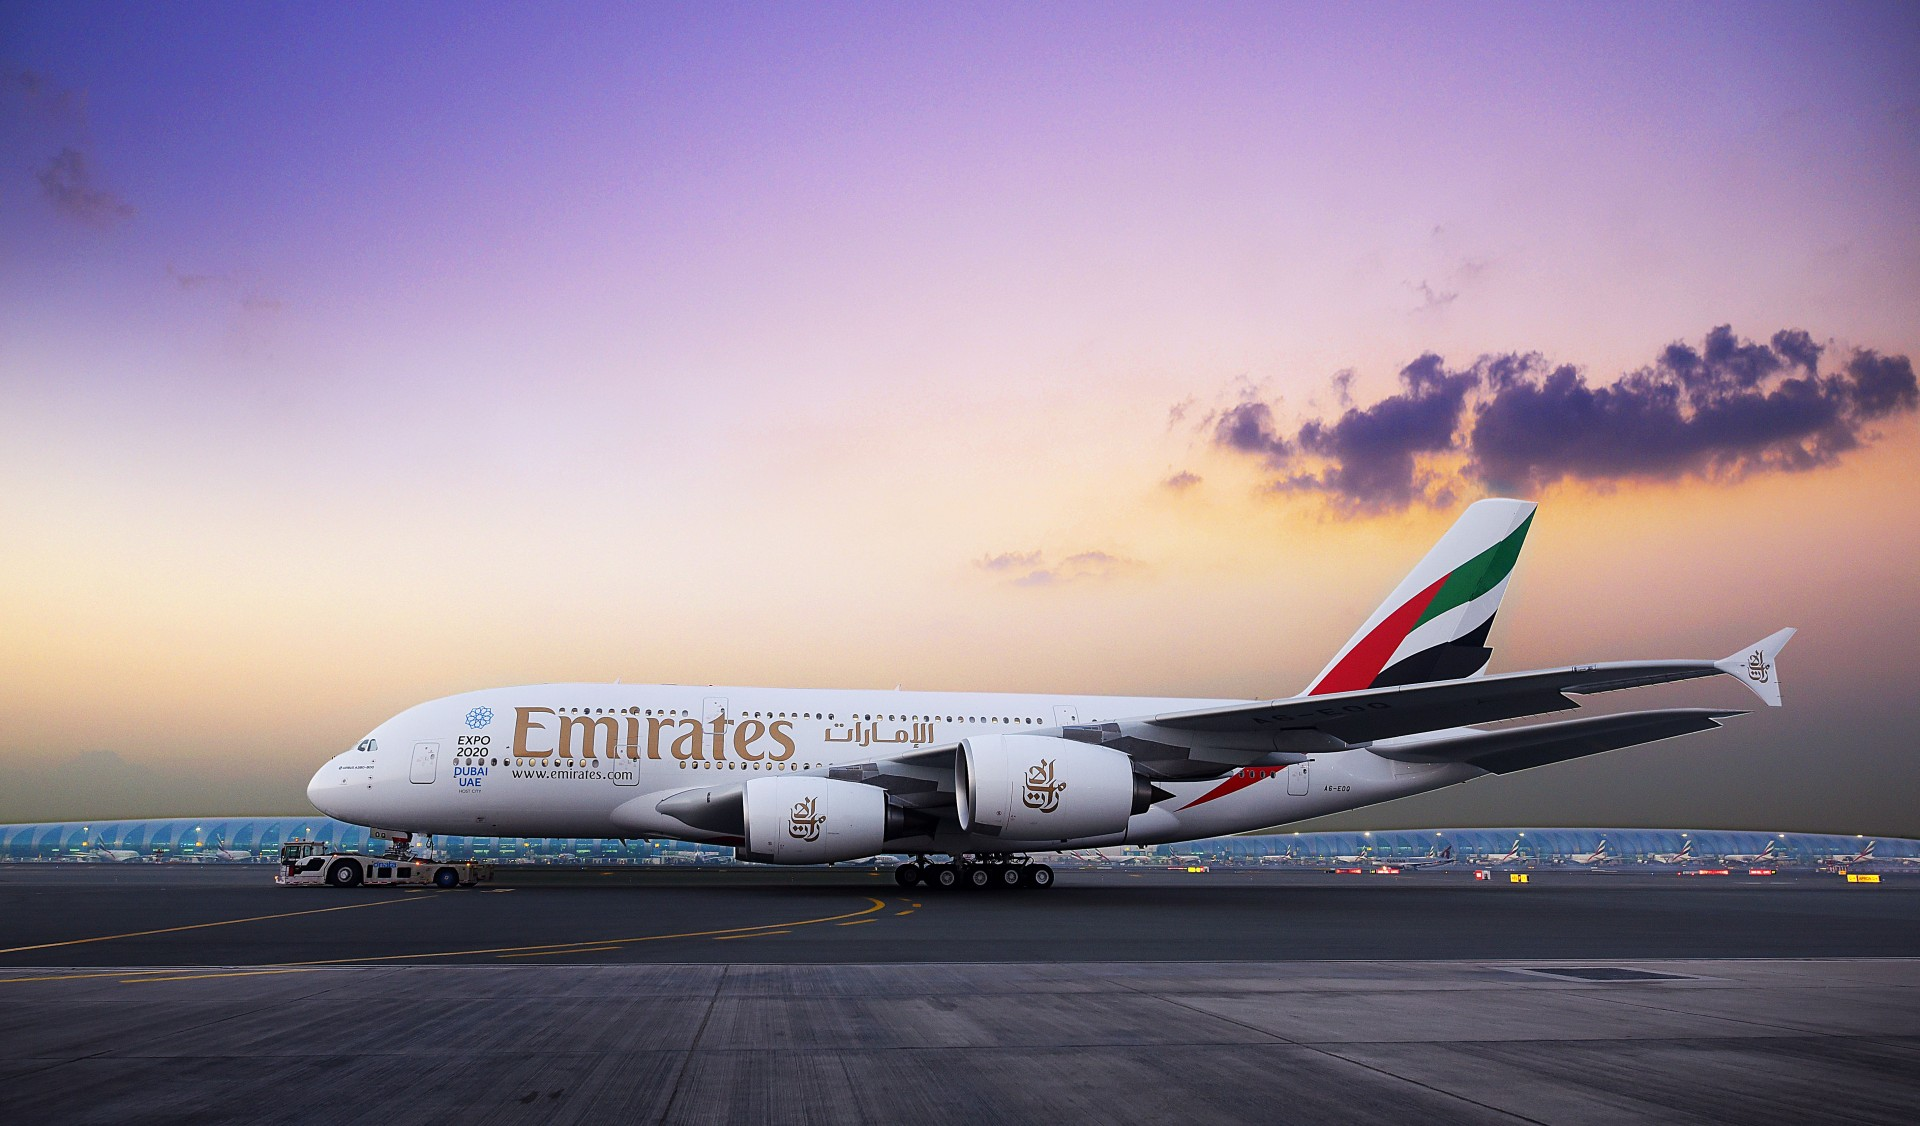 Emirates to operate chartered flights to Moscow and St. Petersburg